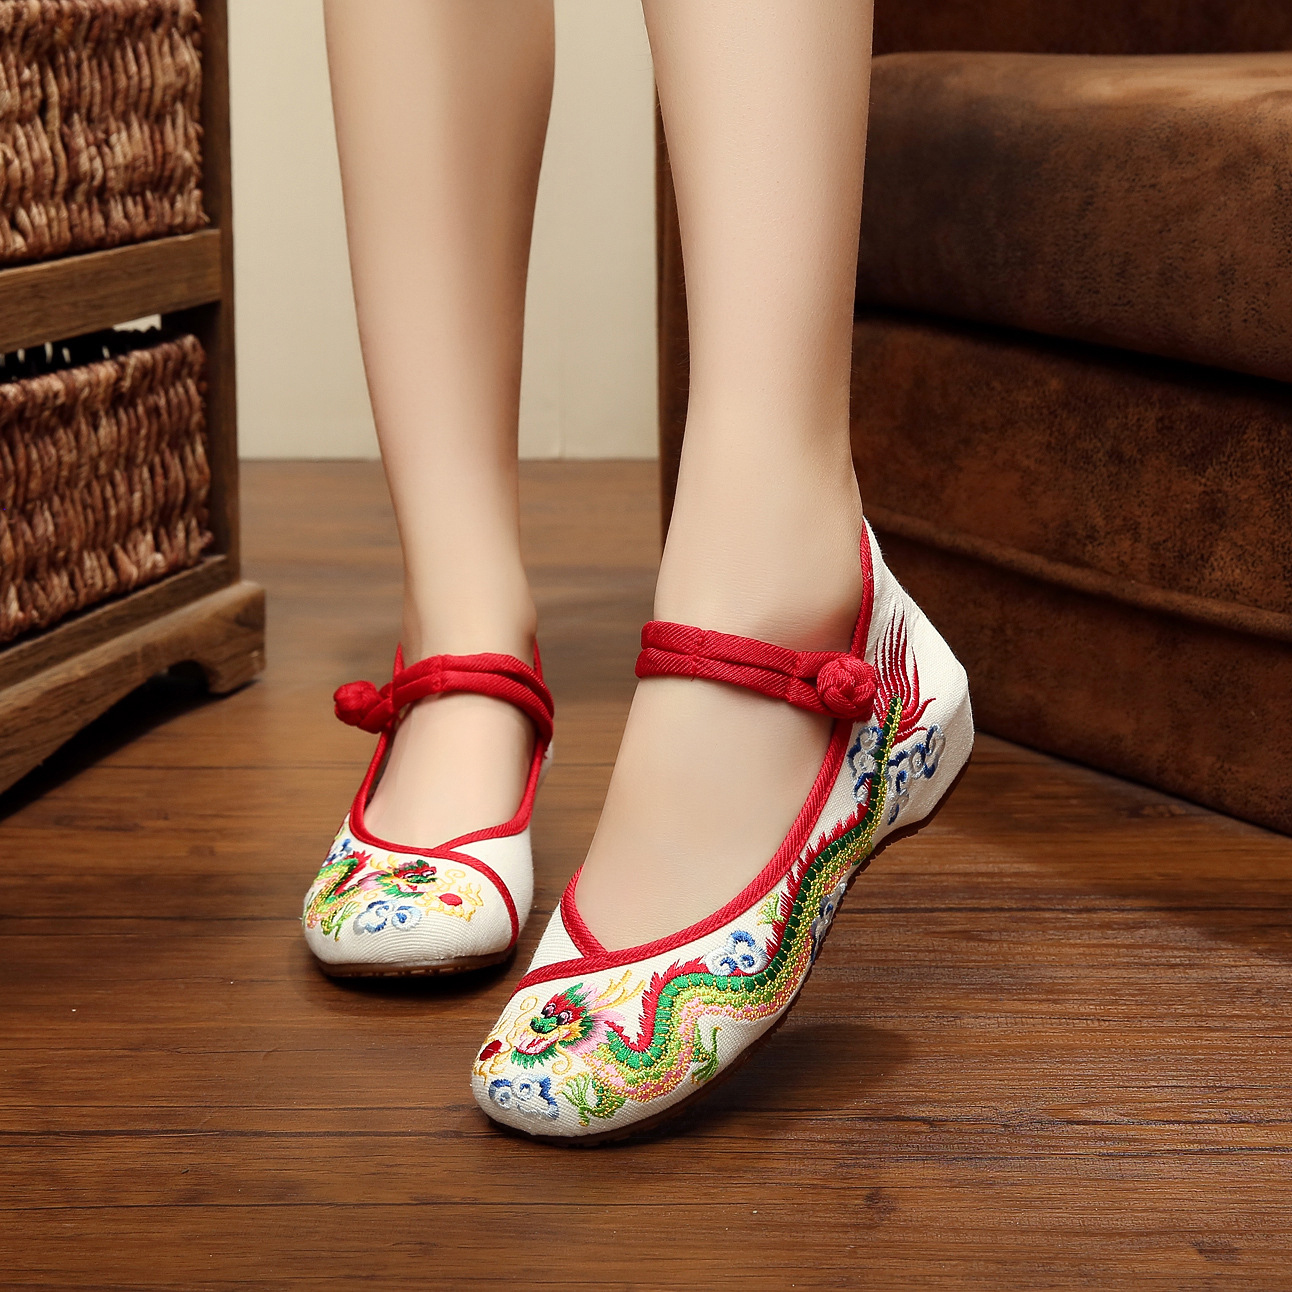 2017 new retro Chinese dragon fashion embroidery womens flats spring and summer simple casual shoes for ladies<br><br>Aliexpress